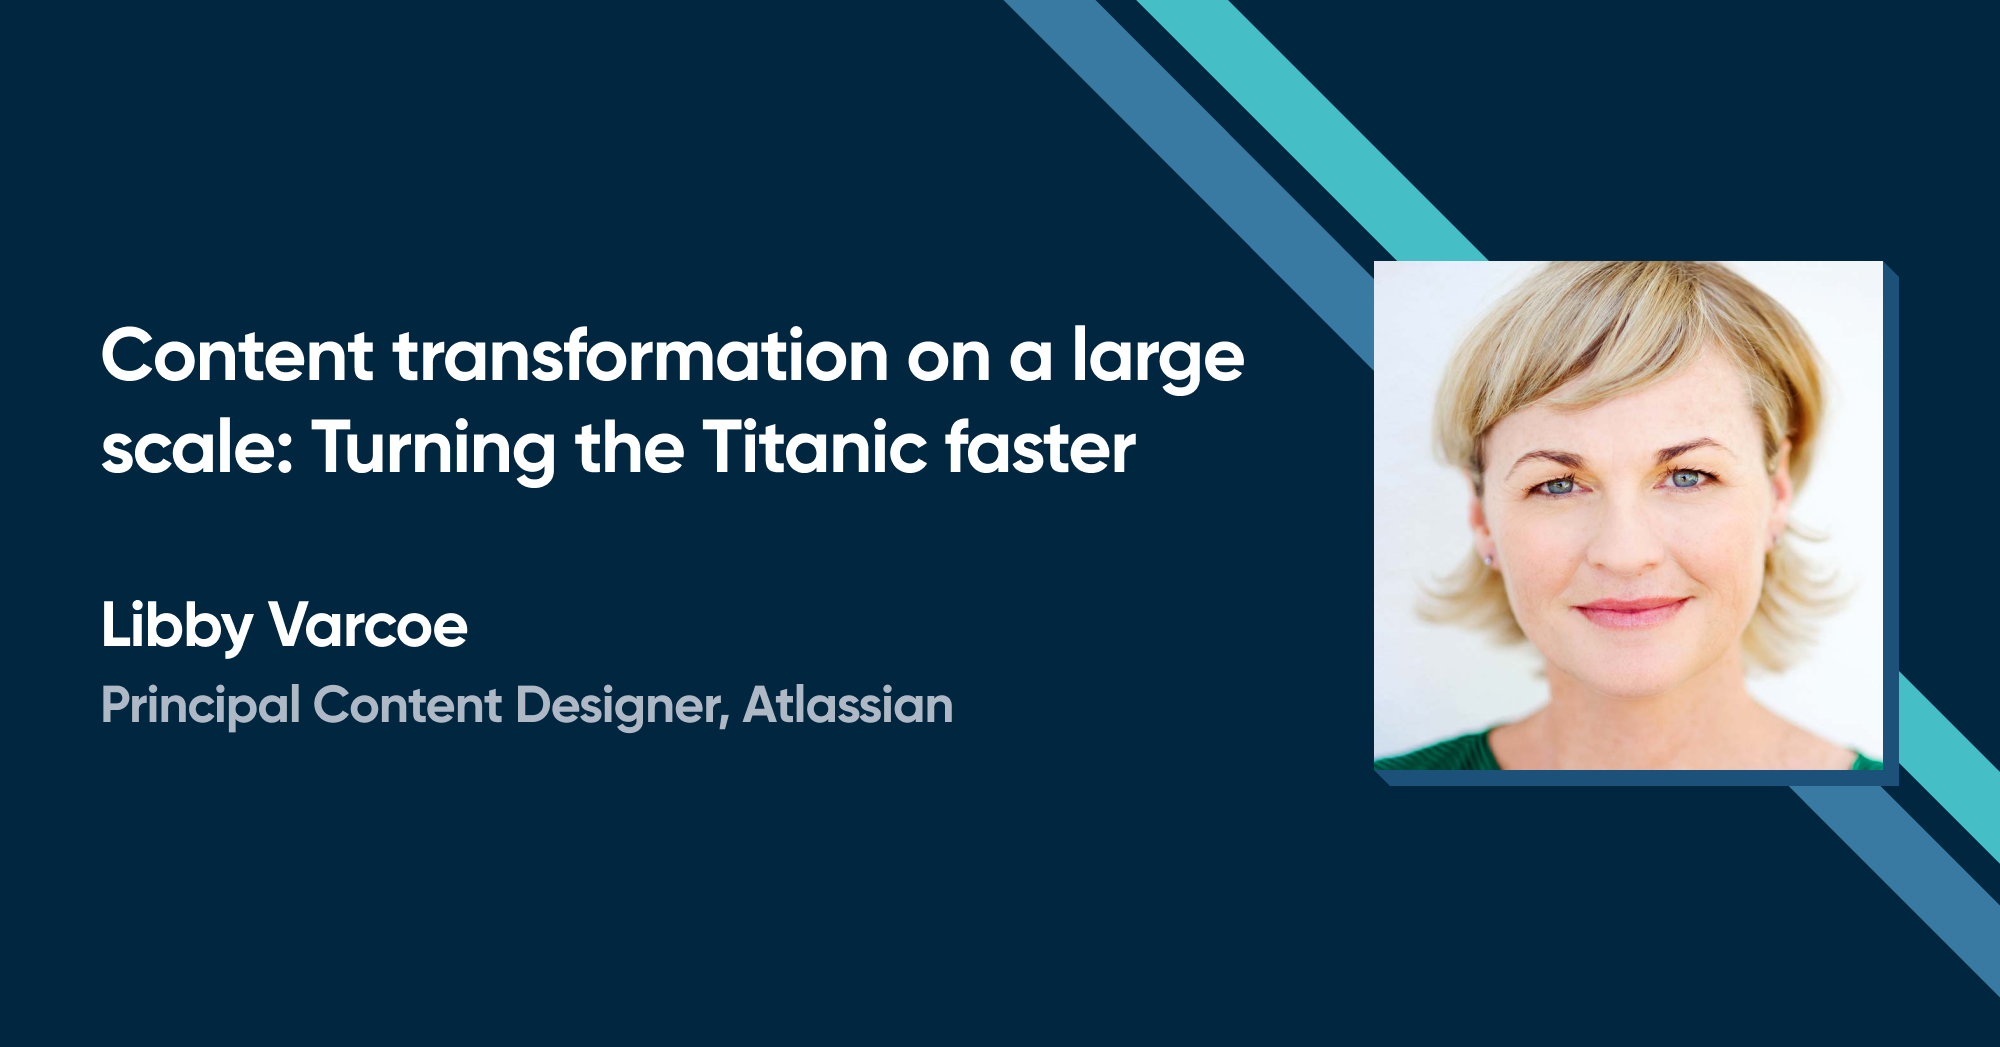 Libby Varcoe - Content transformation on a large scale: Turning the Titanic faster